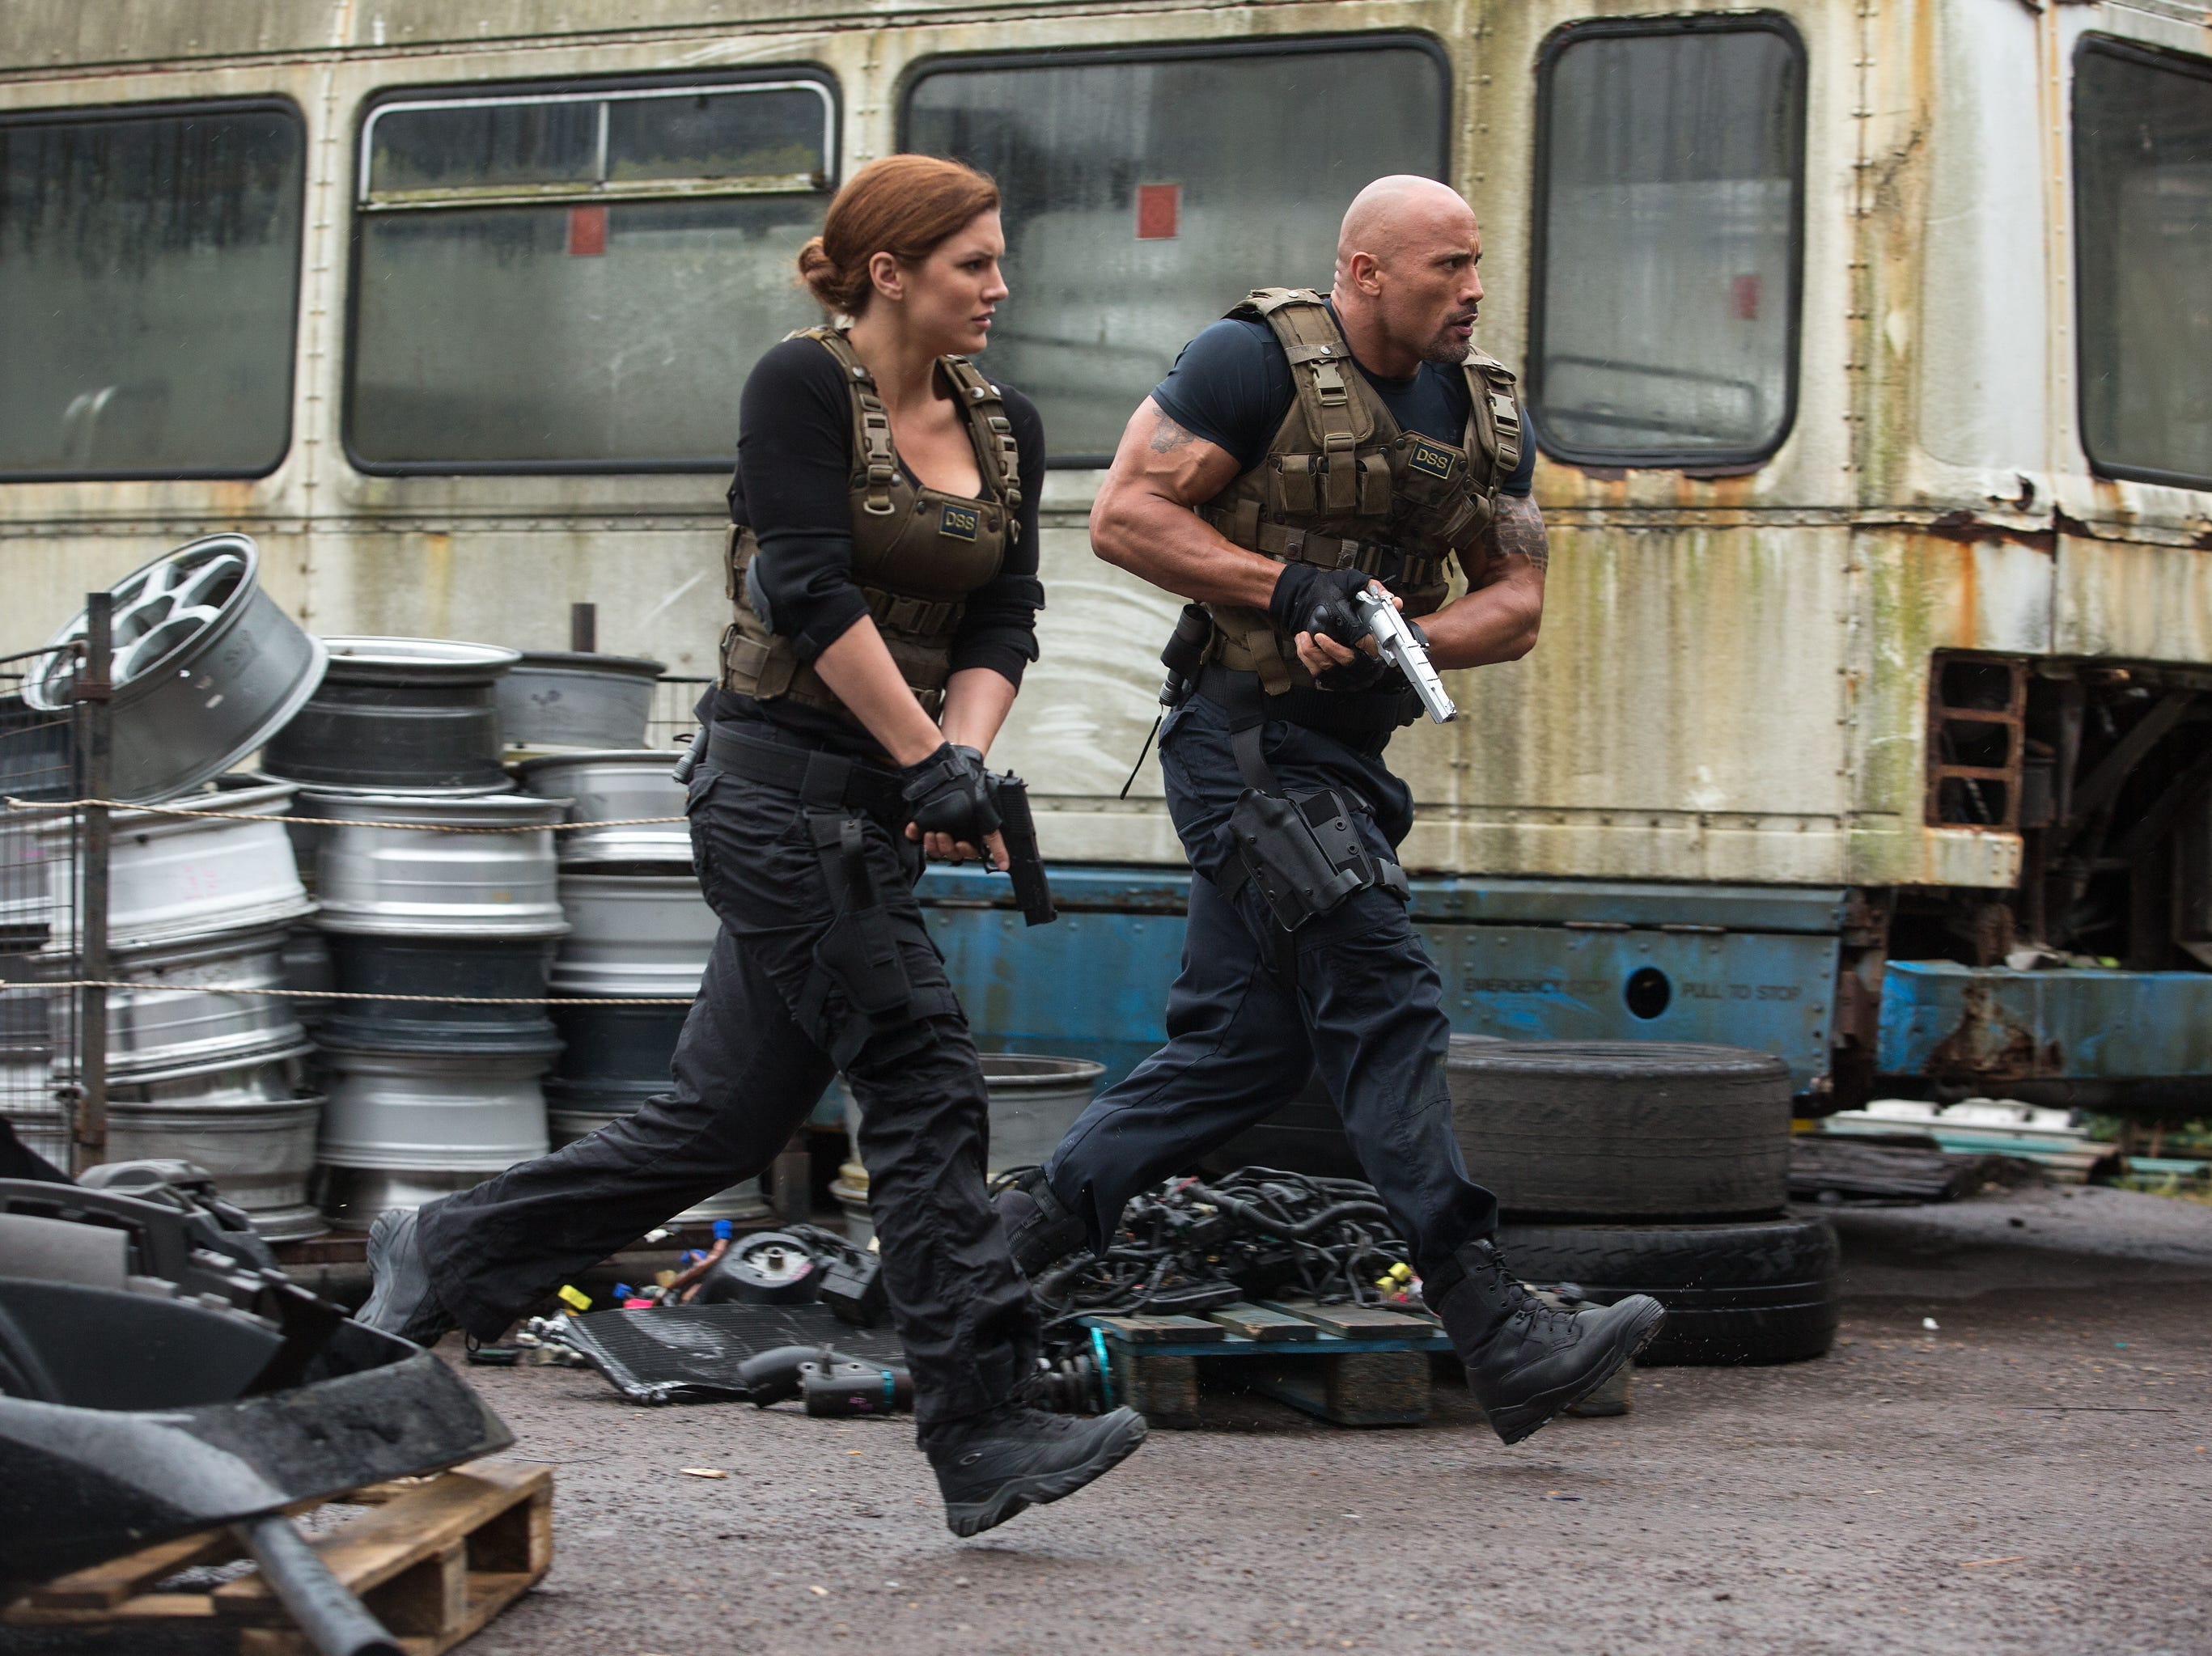 Hobbs (DWAYNE JOHNSON) and Riley (GINA CARANO) lead their strike team in a scene from the motion picture 'Fast & Furious 6.' Credit: Giles Keyte, Universal Pictures [Via MerlinFTP Drop]